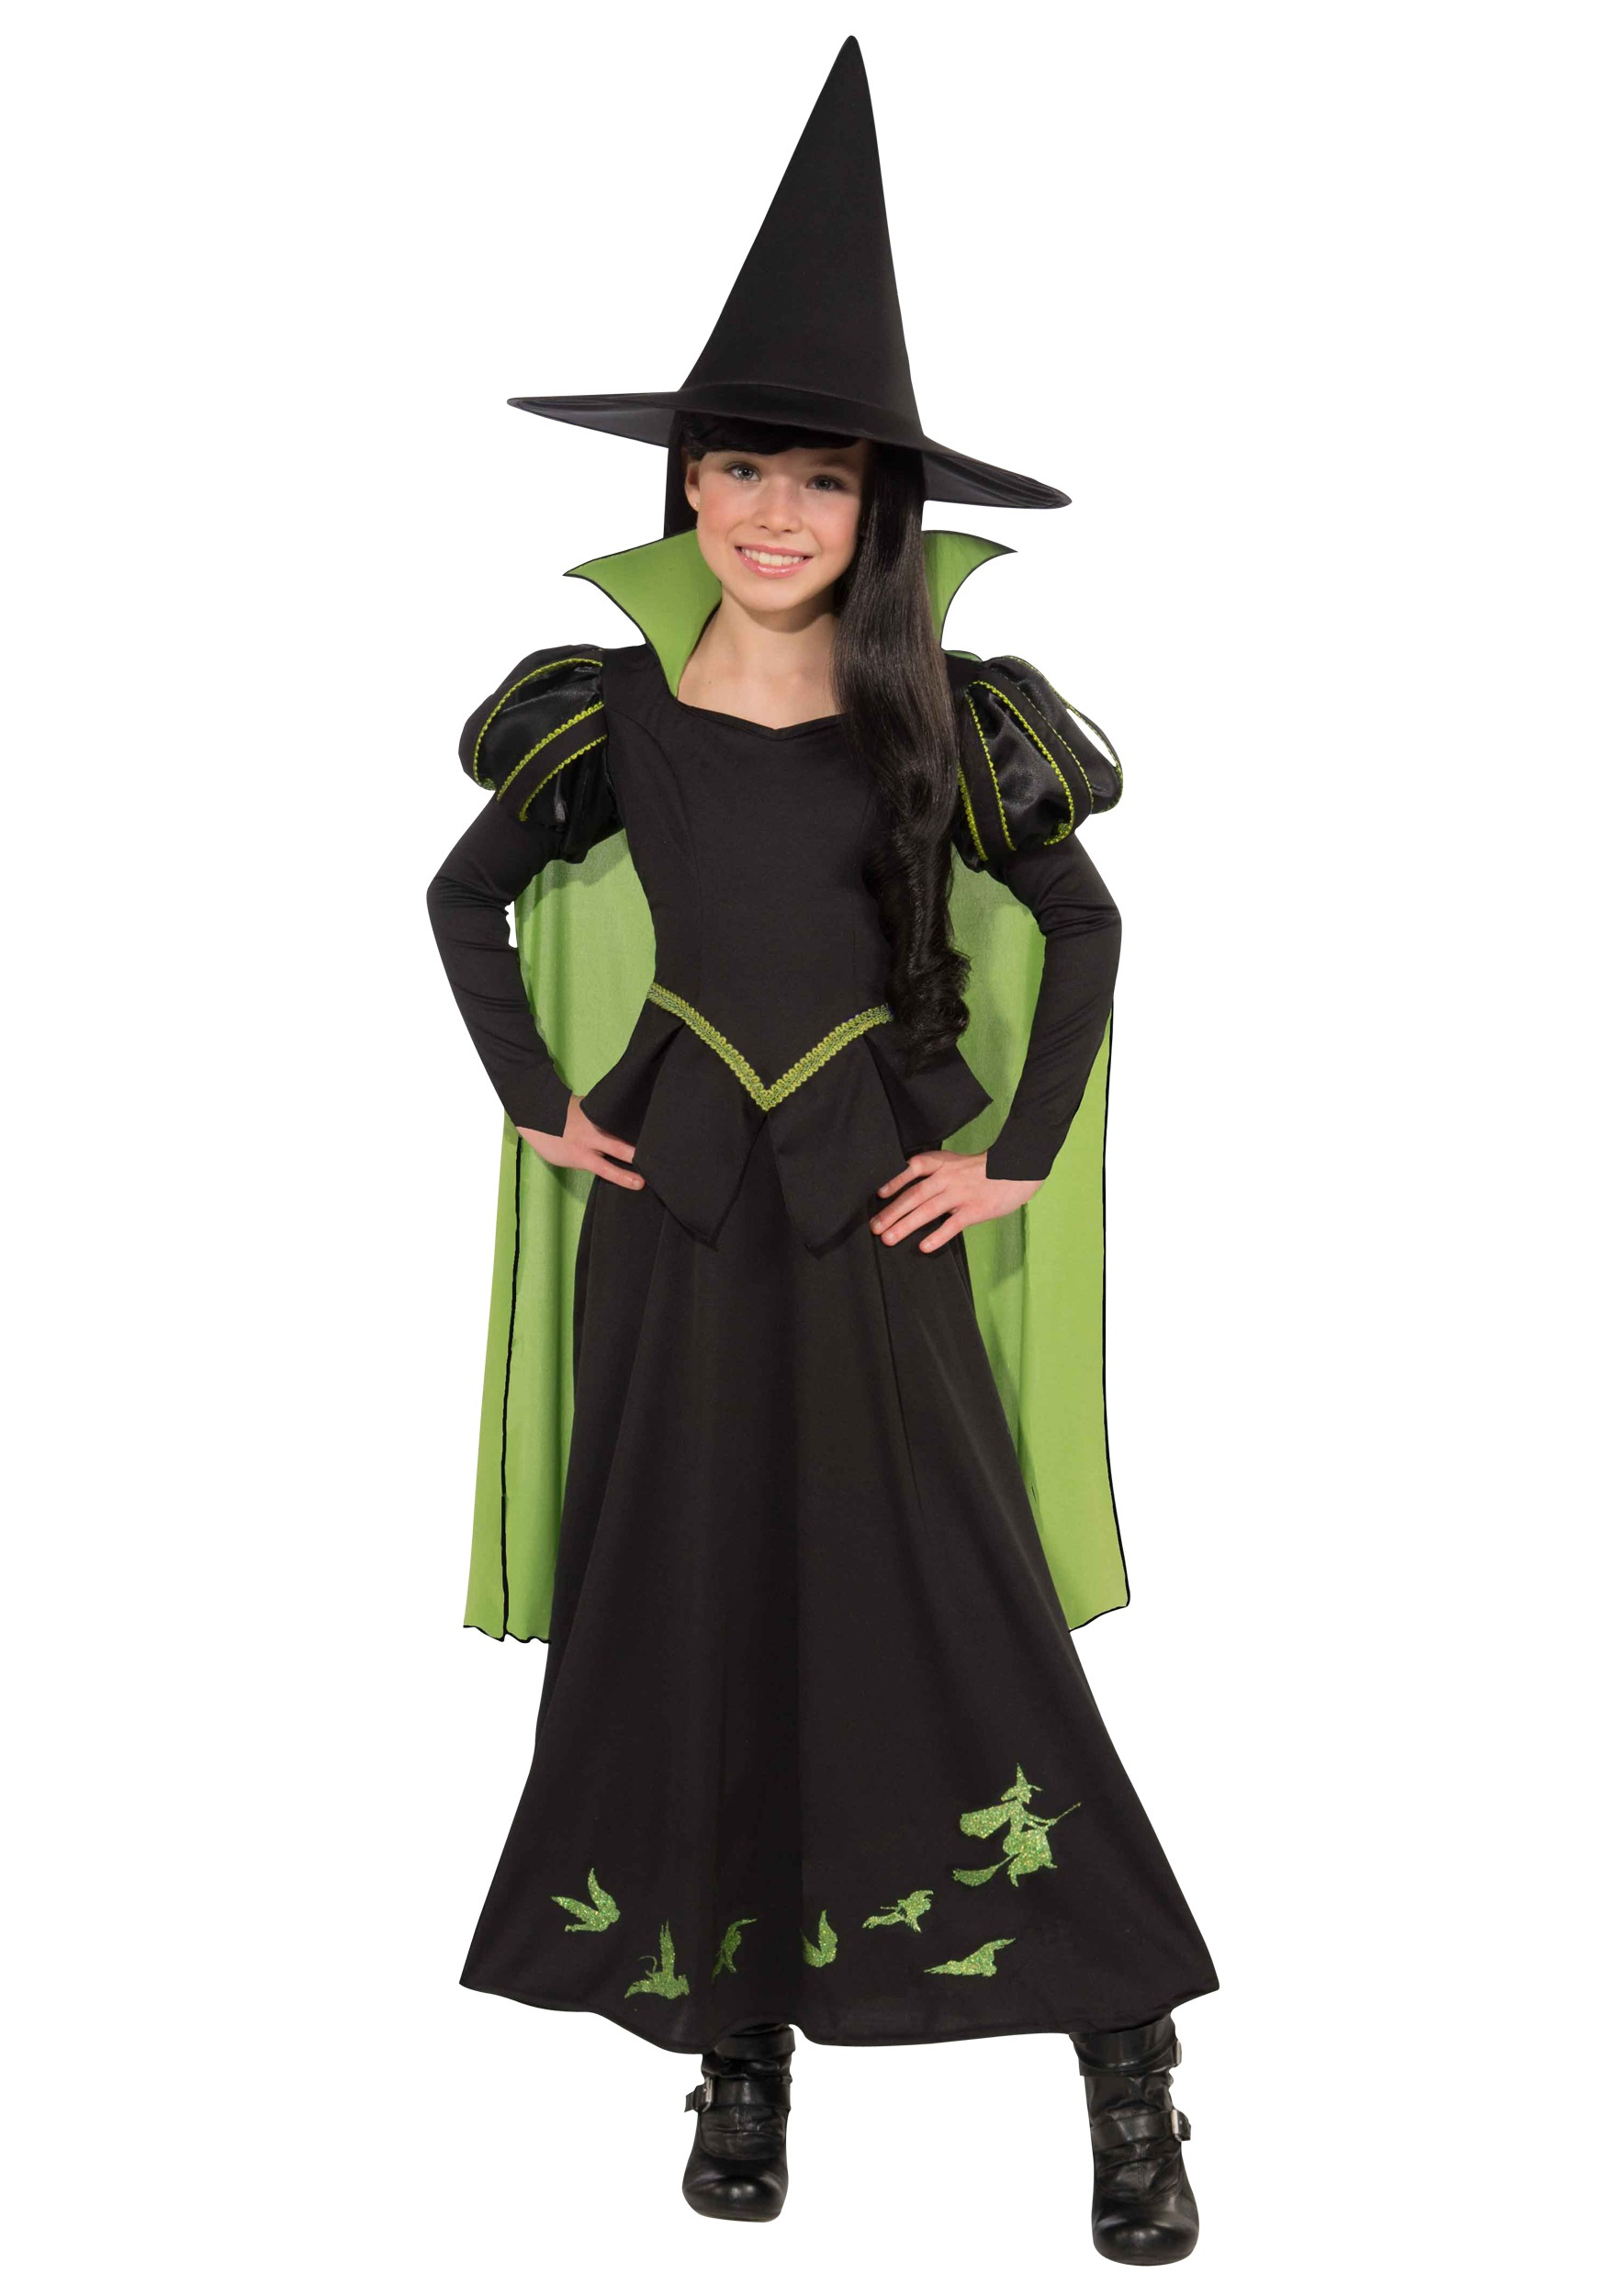 sc 1 st  Halloween Costumes : wicked halloween costume  - Germanpascual.Com